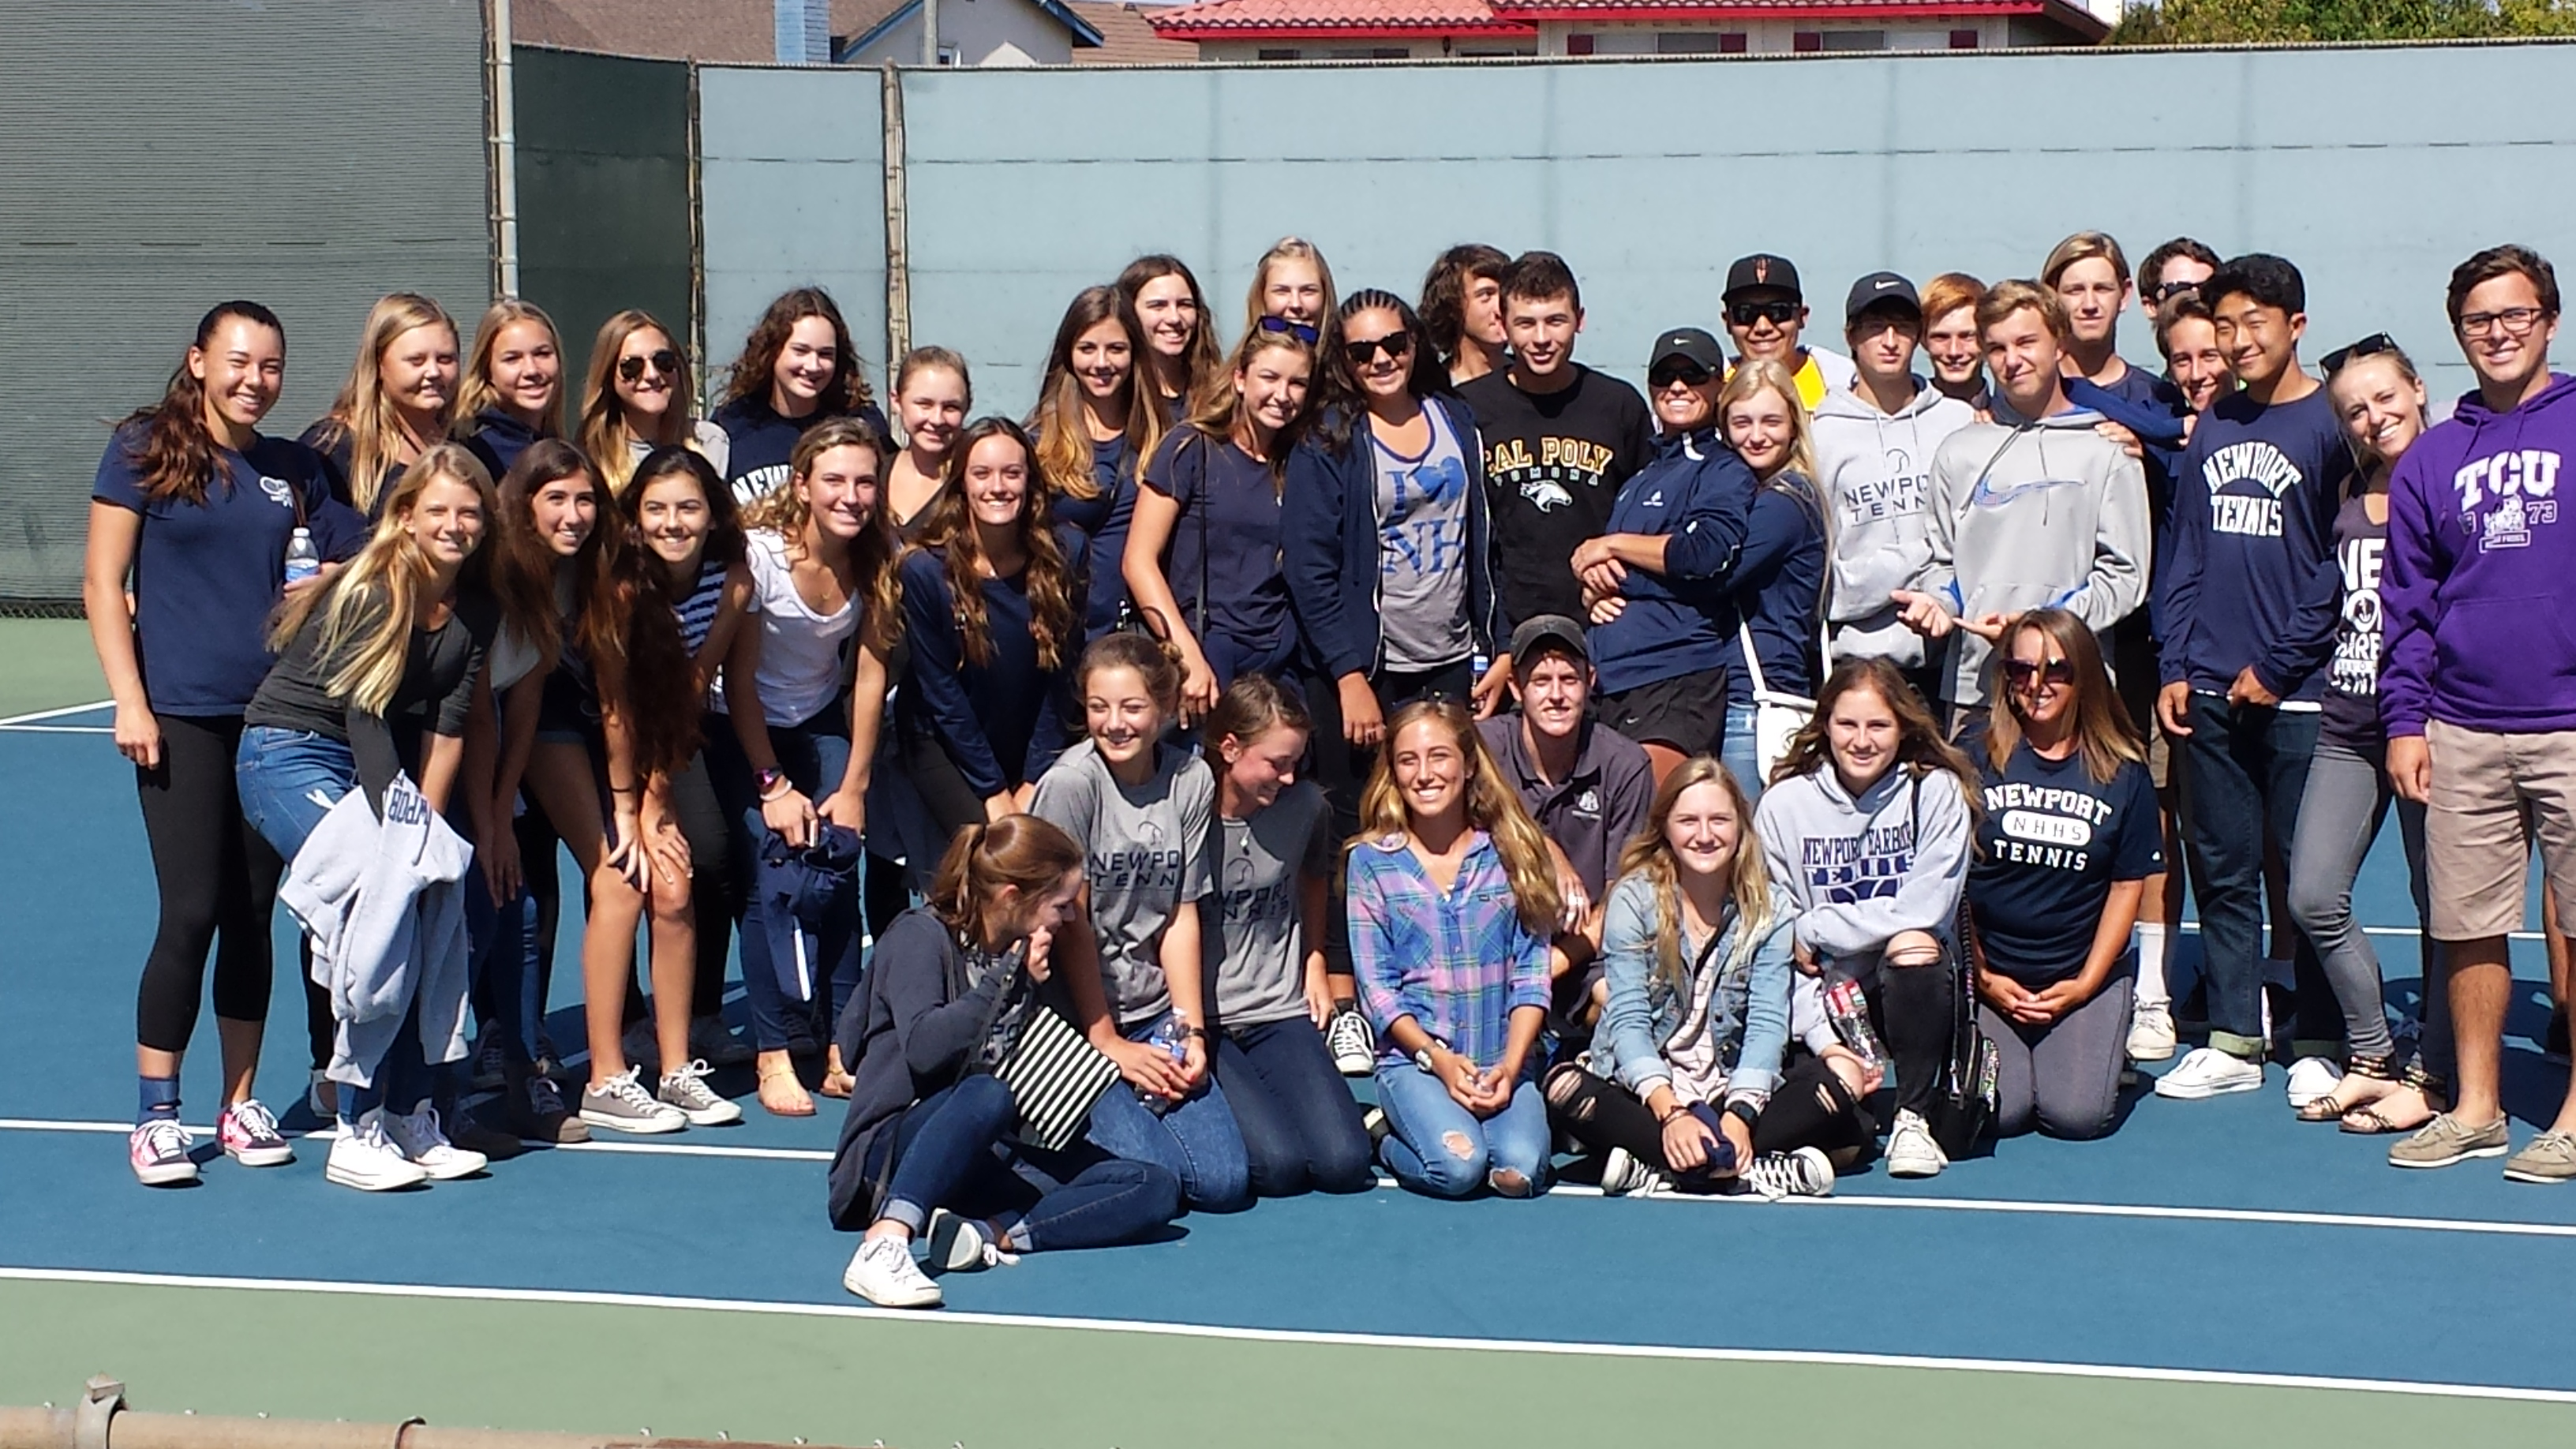 NHHS Tennis Supports Reese Stalder during his CIF Tournament Play: GO Sailors!